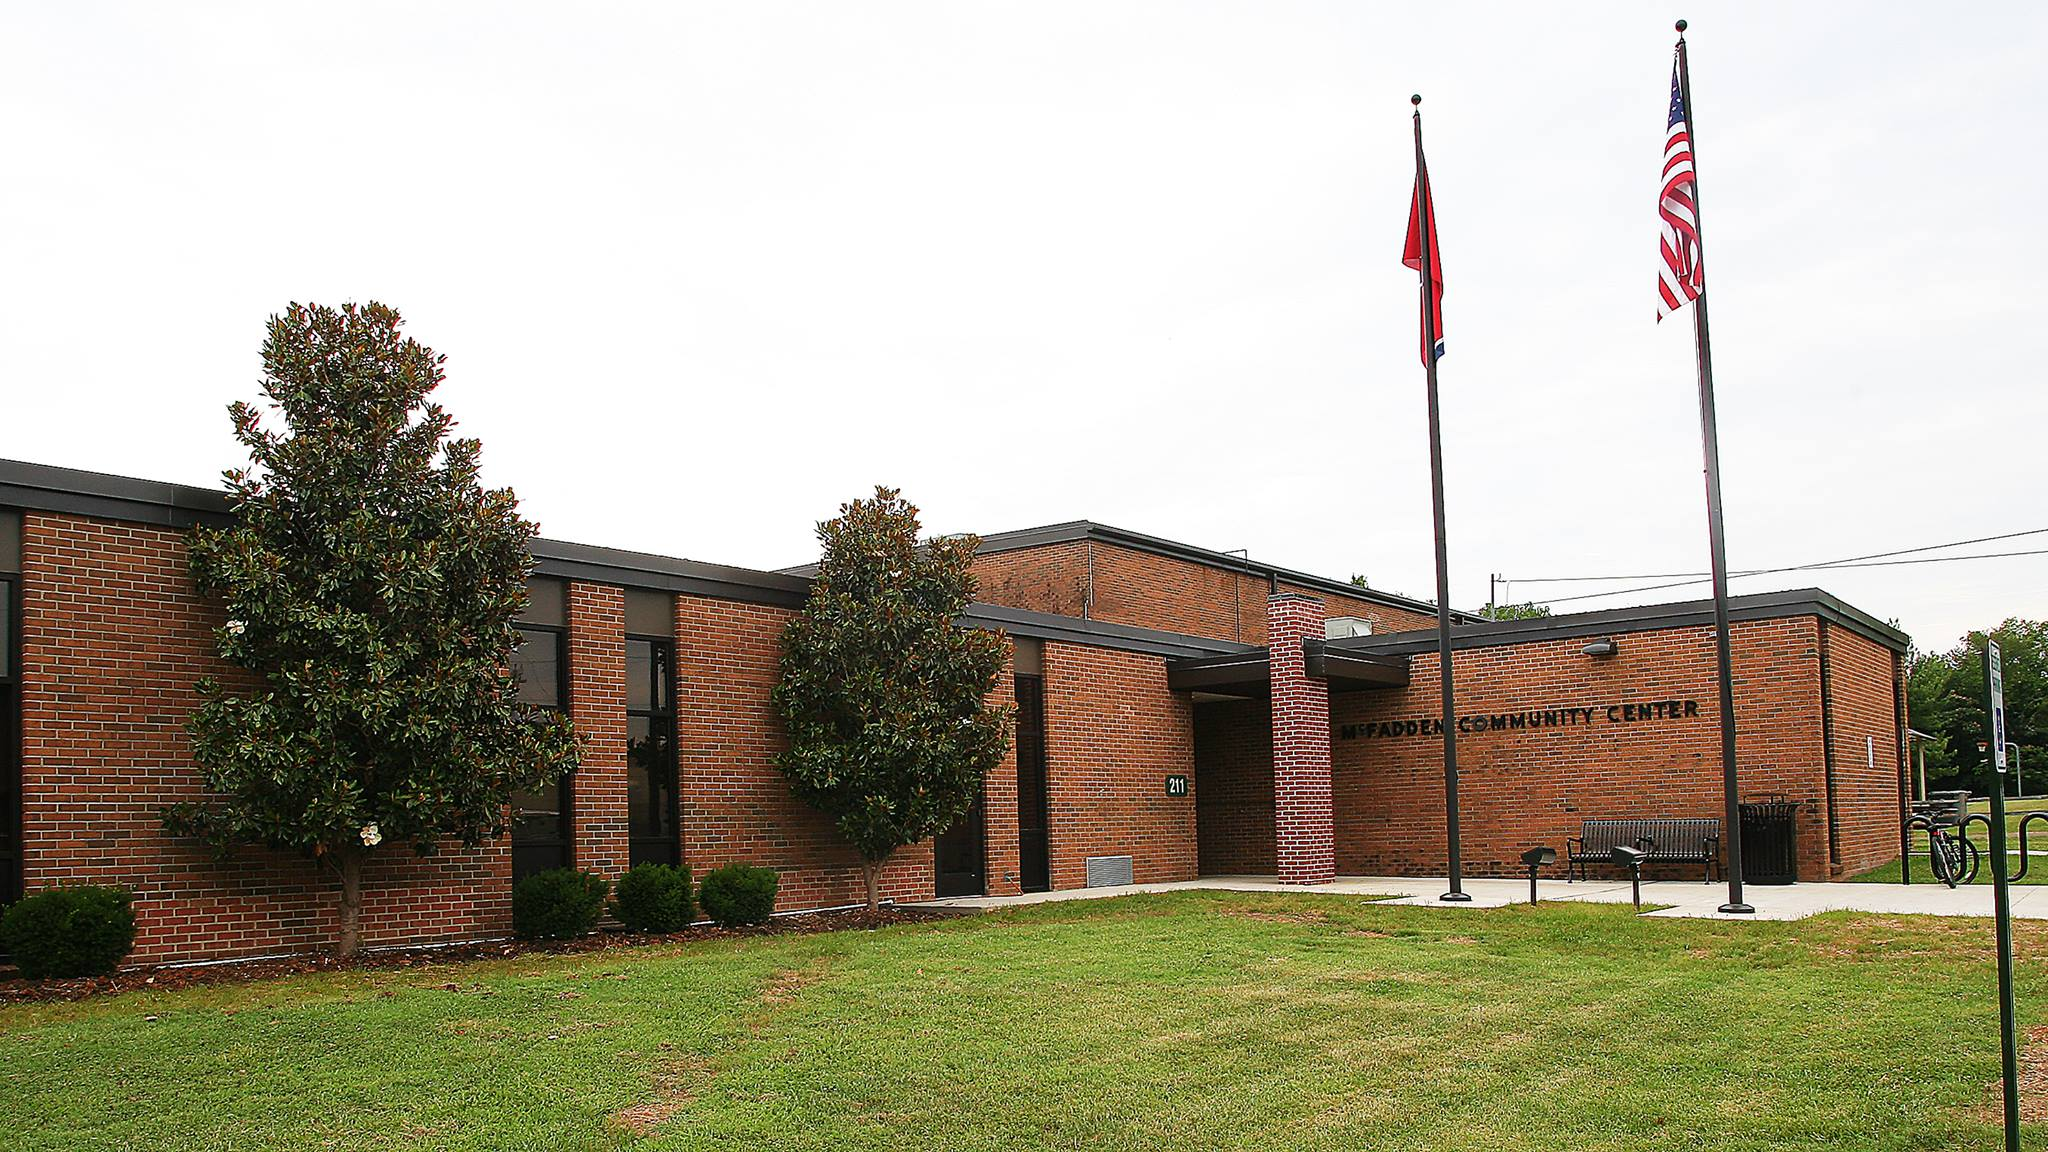 McFadden Community Center